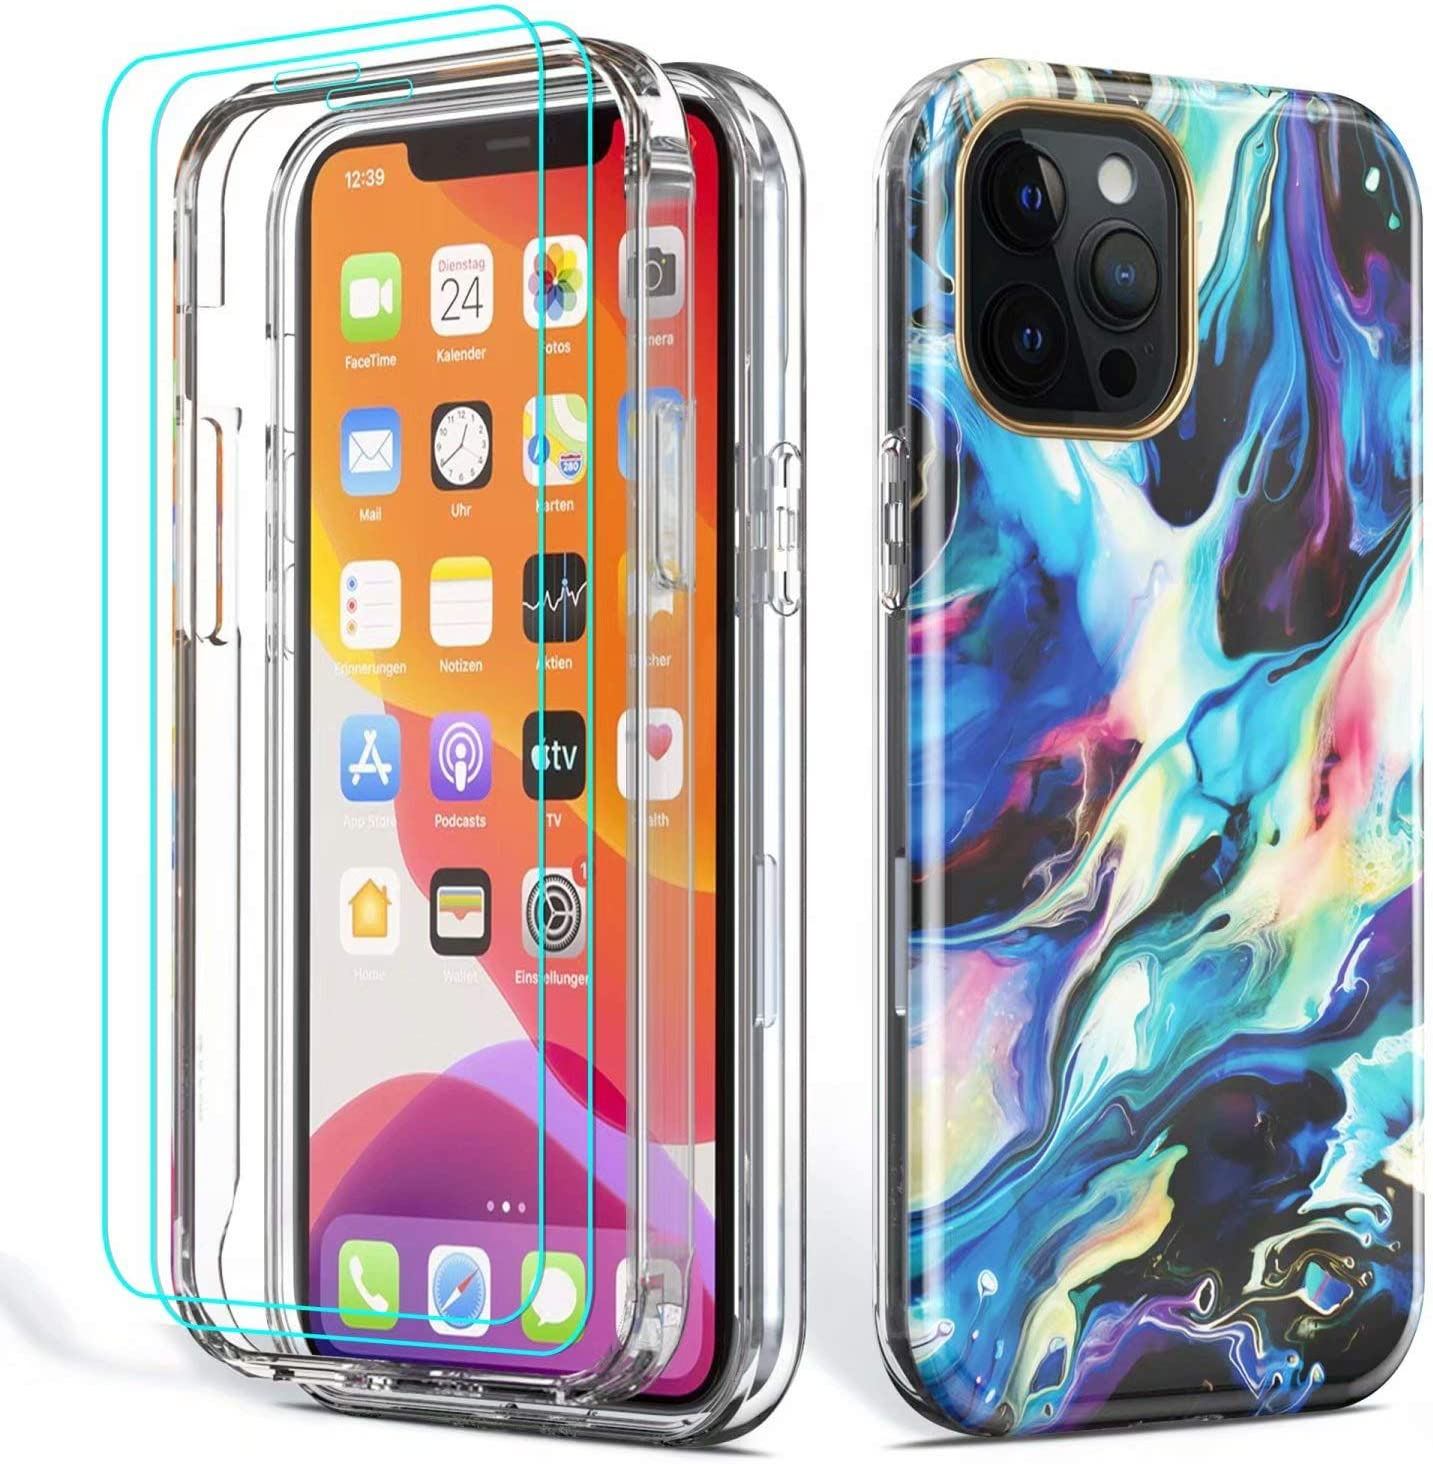 ROSEHUI Compatible with iPhone 11 Case,2PCS Tempered Glass Screen Protector,Glitter Marble Design for Women Girls Clear Bumper Rugged Shockproof Phone Protective Cover for iPhone 11 6.1 Inch